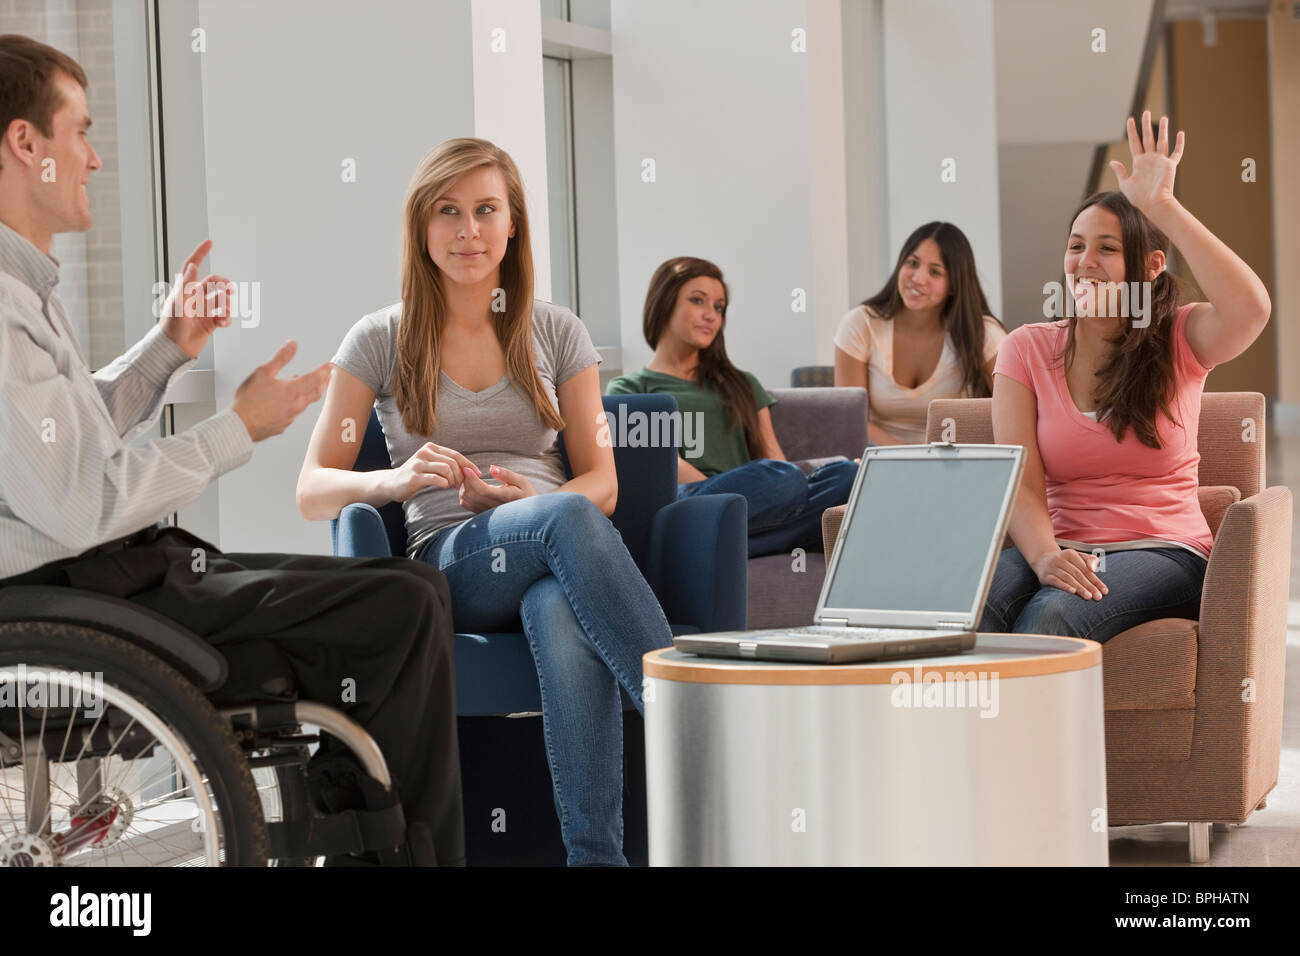 Teacher with spinal cord injury giving a lecture to students in classroom - Stock Image